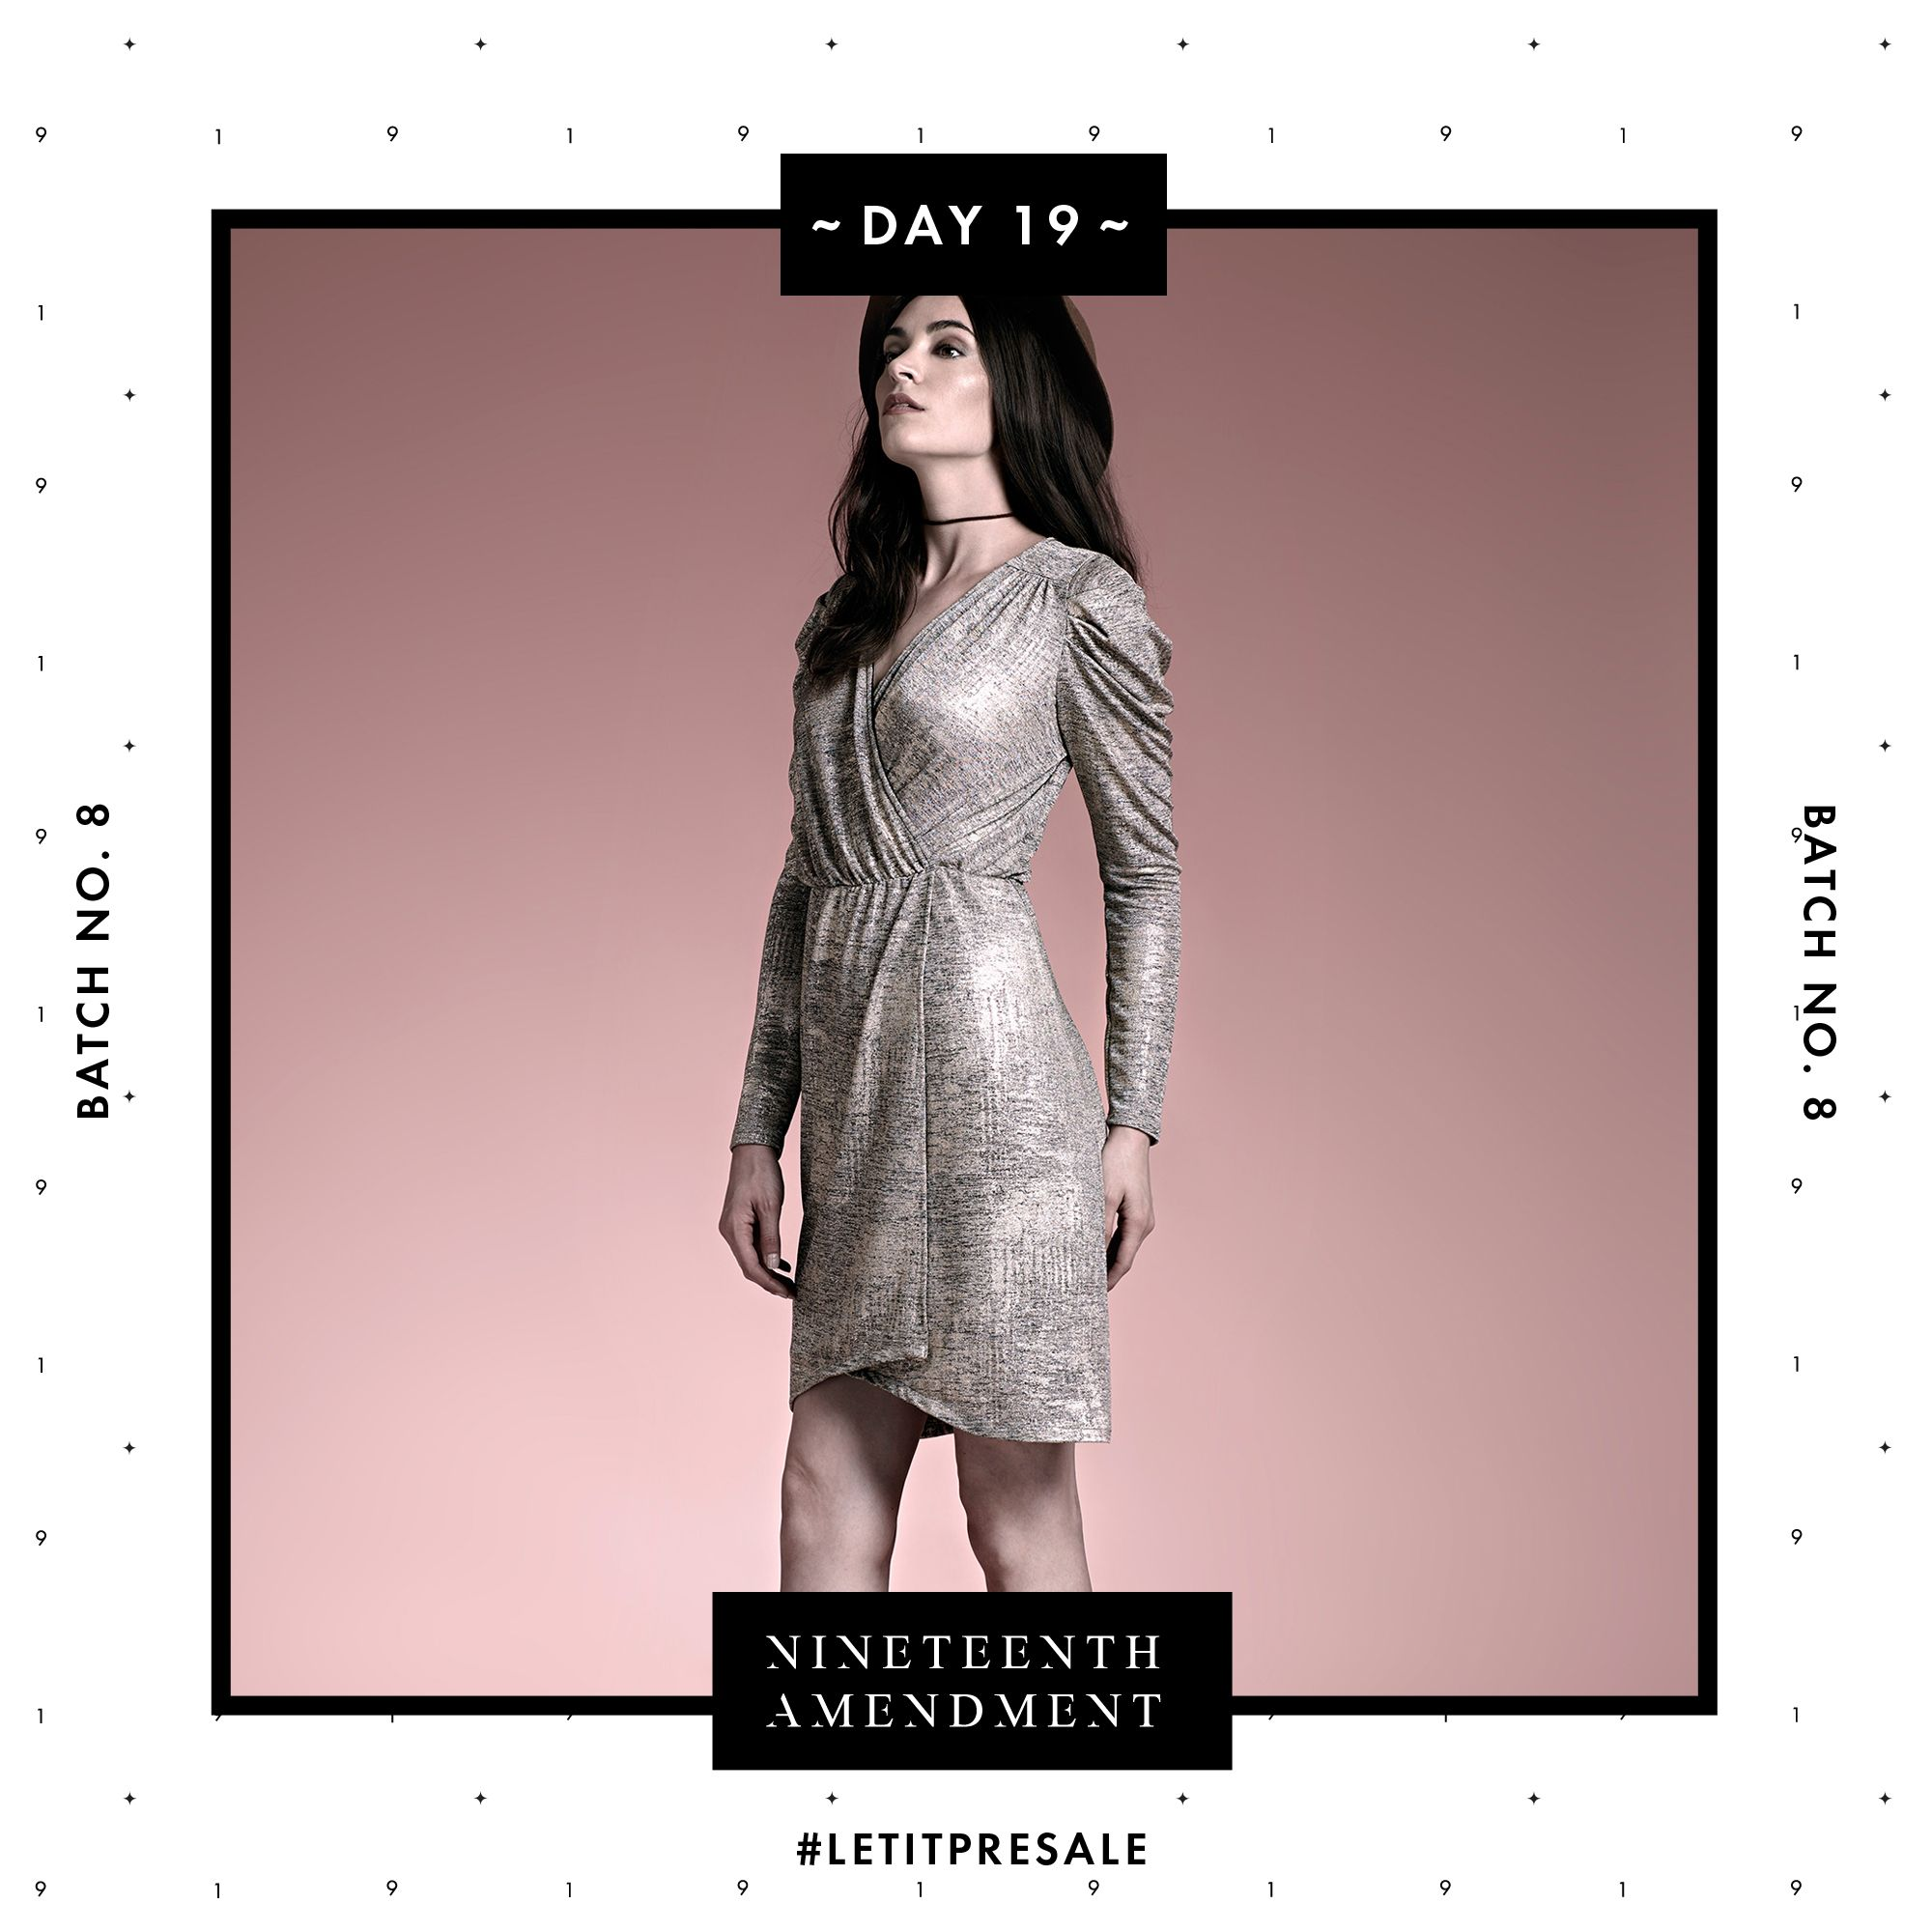 Day 19: Today's the last day in our 19 days of presale, so why not go for Gold this holiday season in this BATCH NO. 8 dress